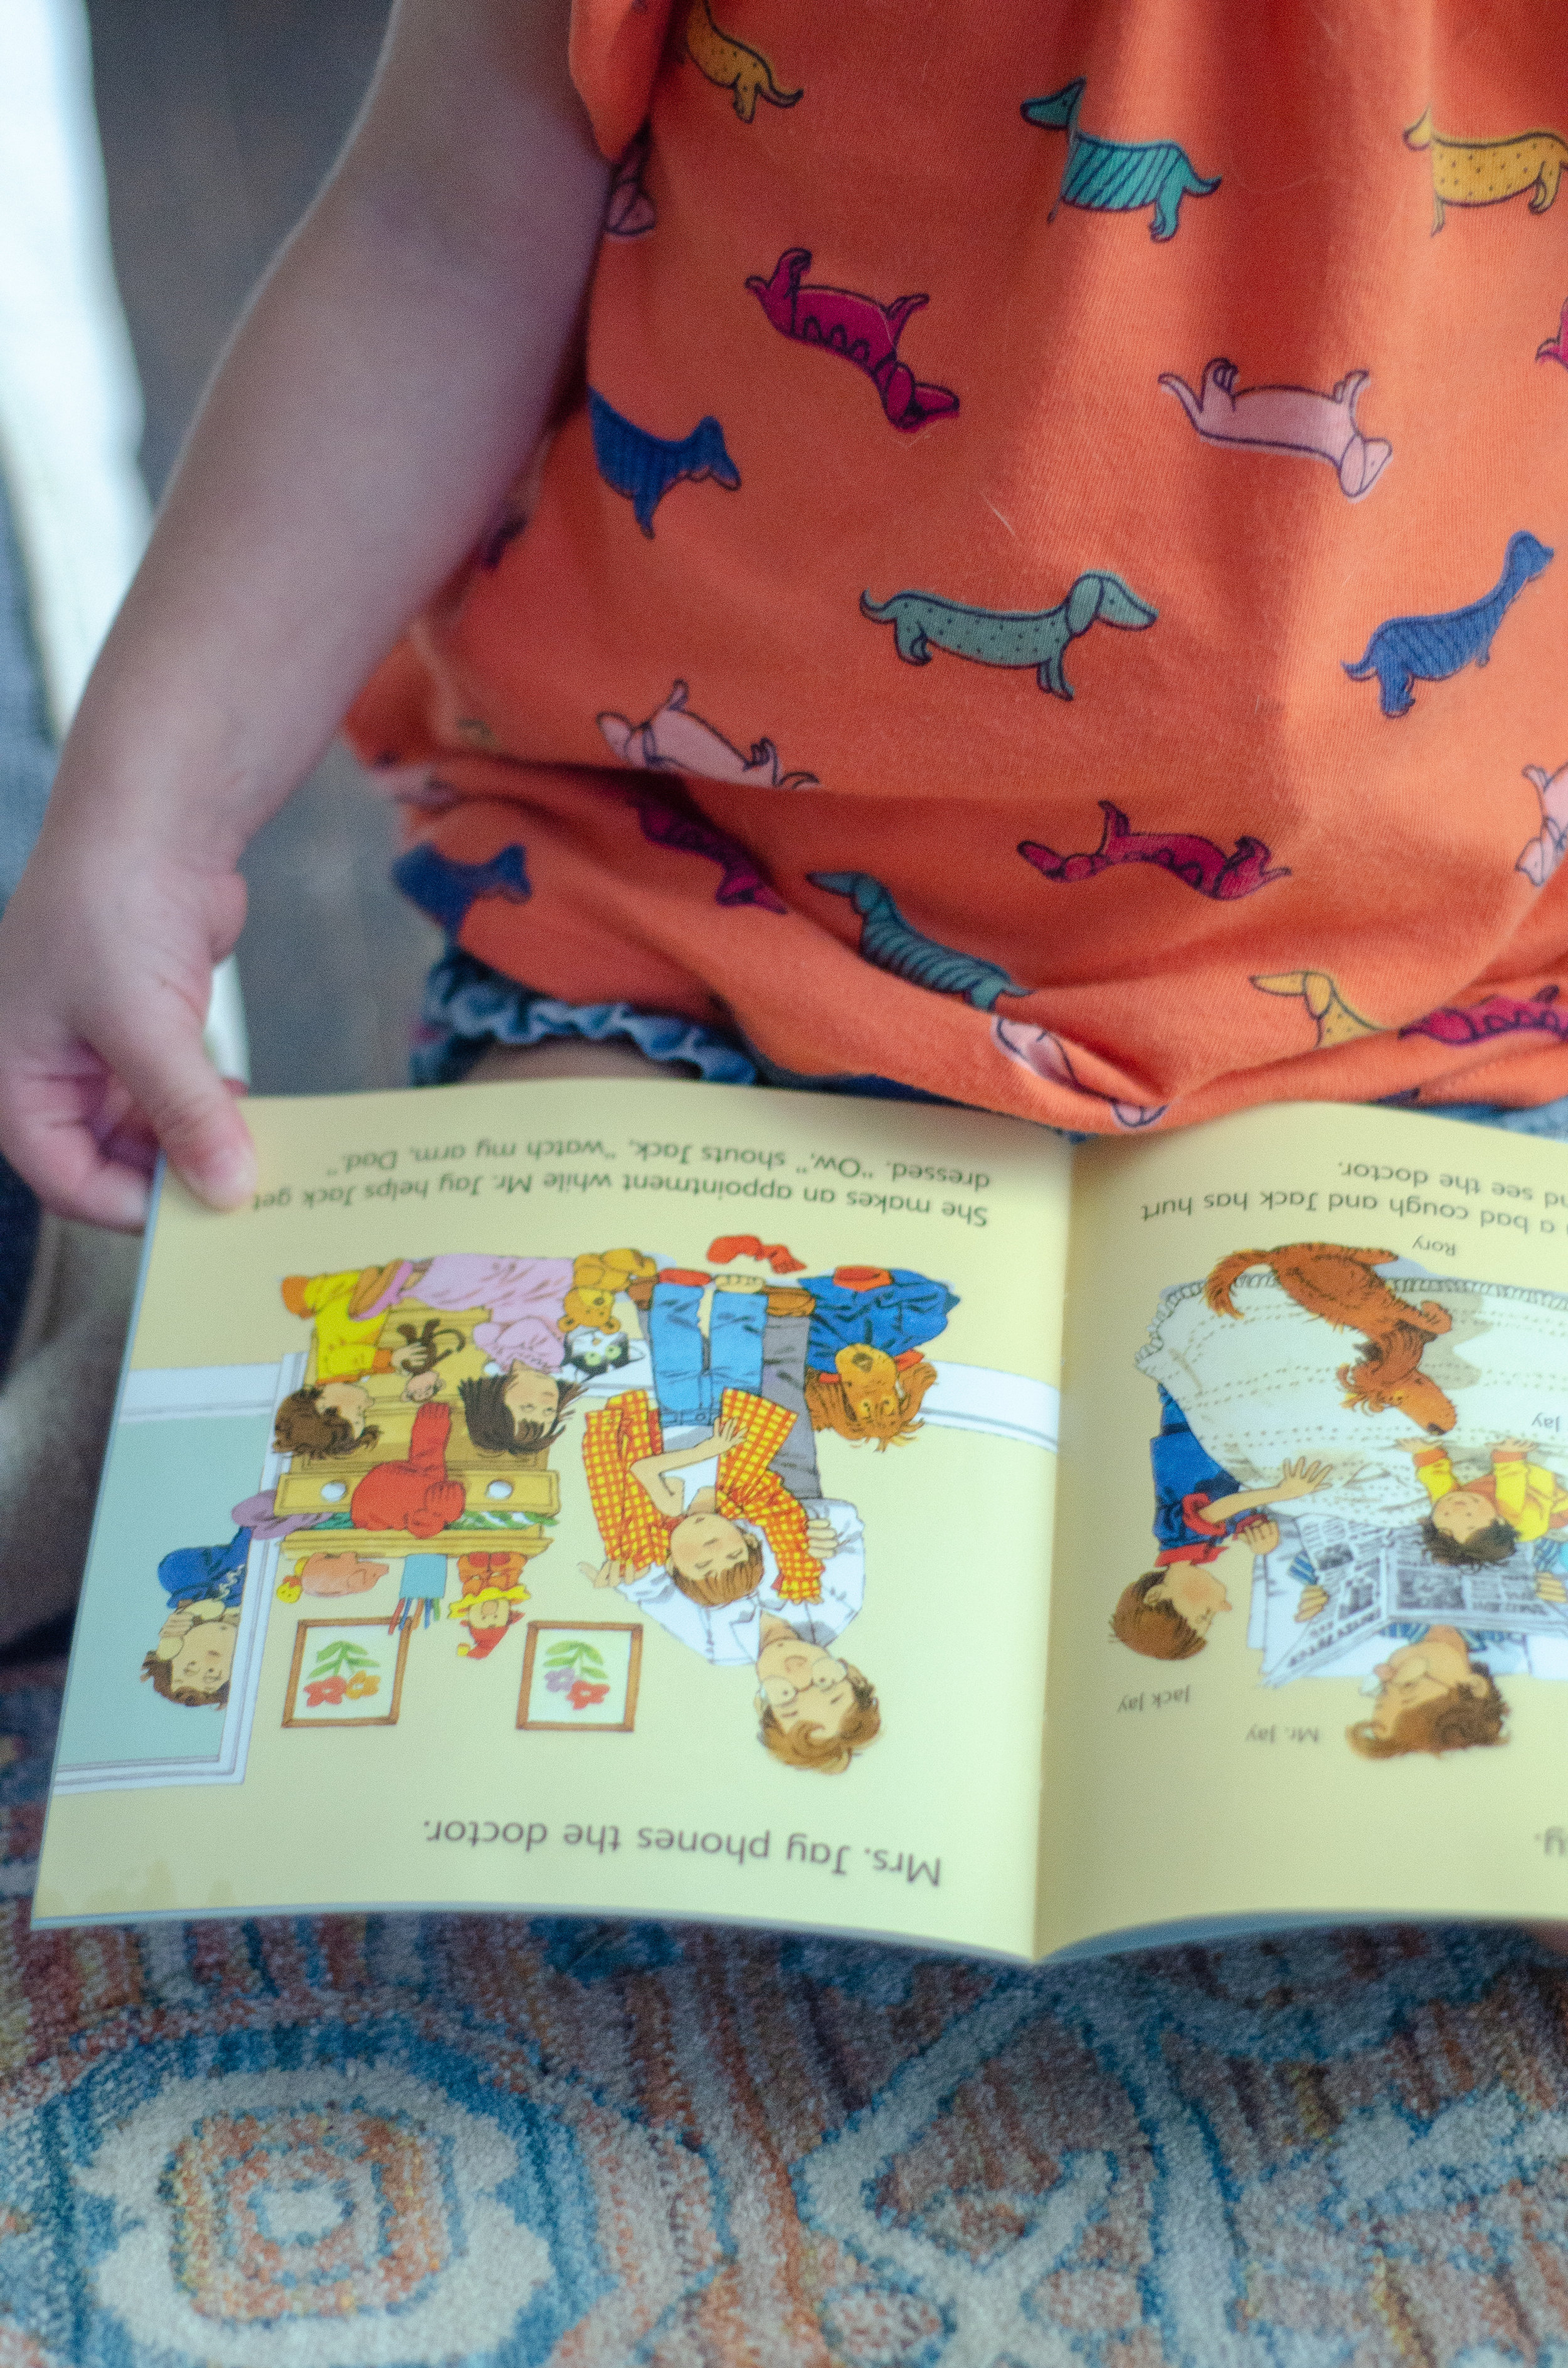 books for kids about the doctor - she got guts